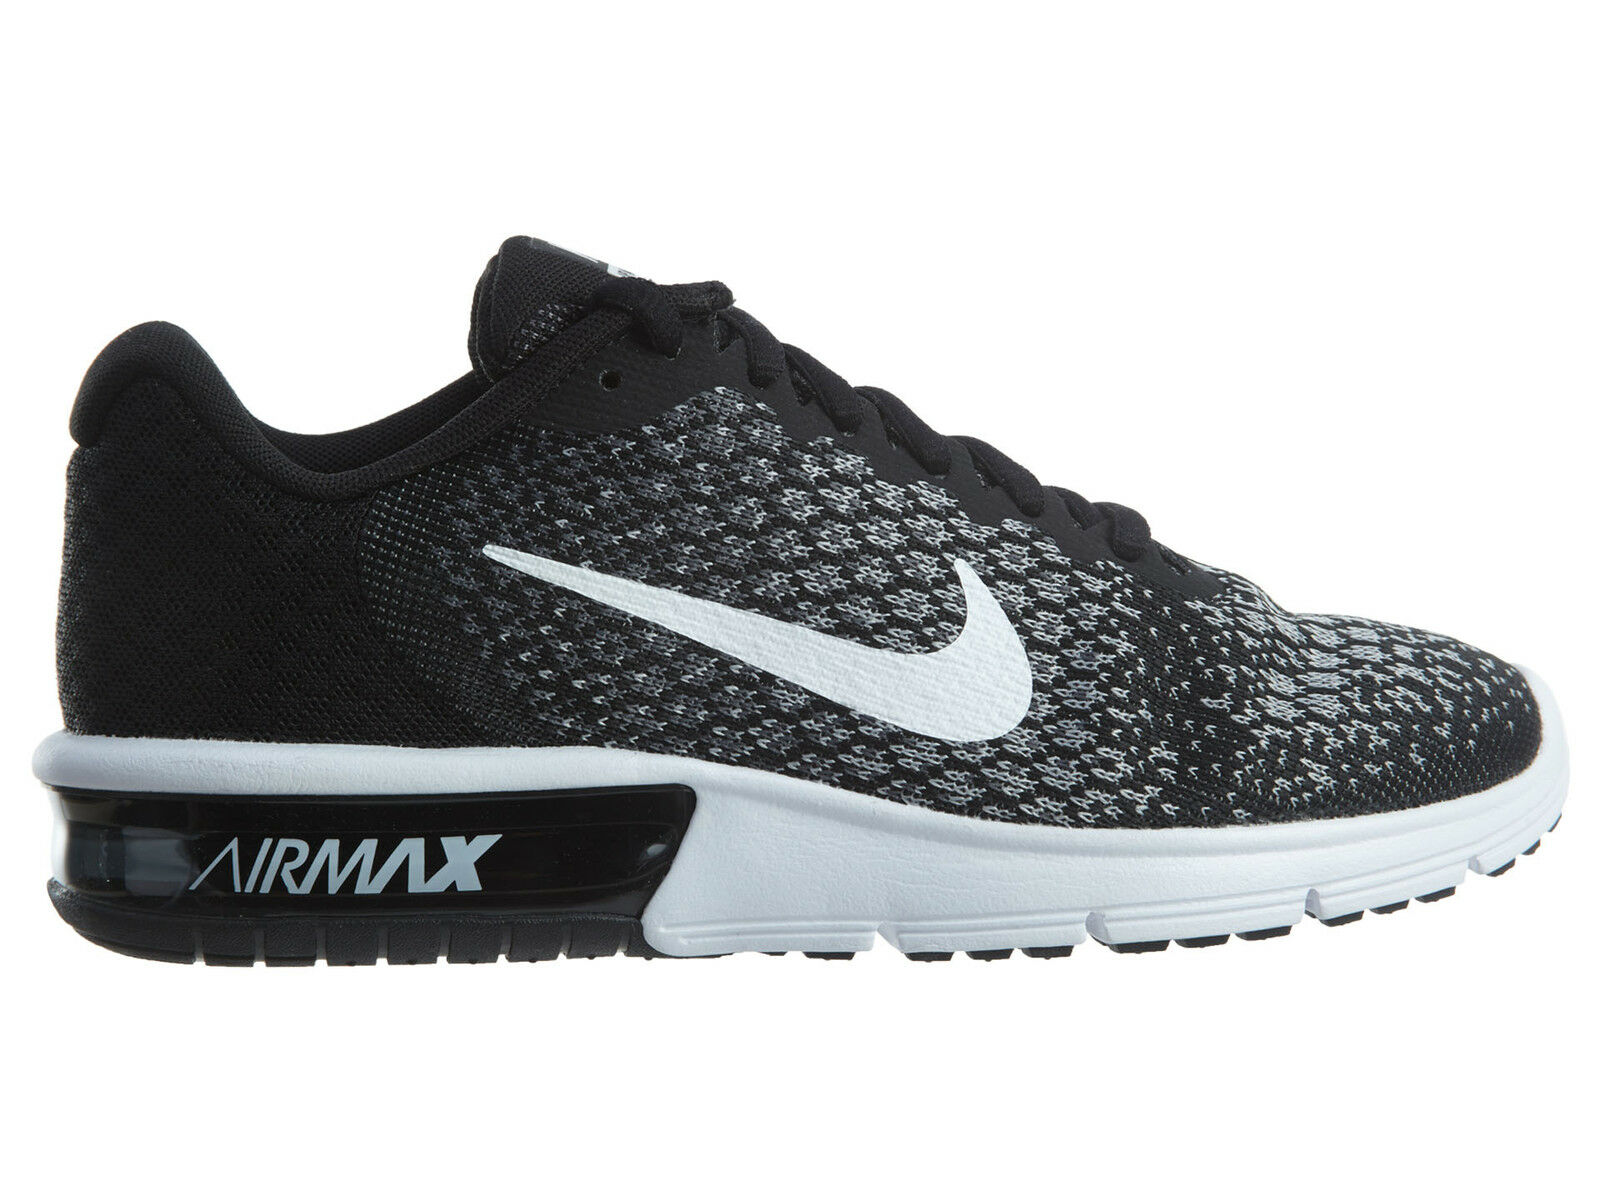 Nike Air Max Sequent 2 Womens 852465-002 Black Grey Knit Running Shoes Size 8.5